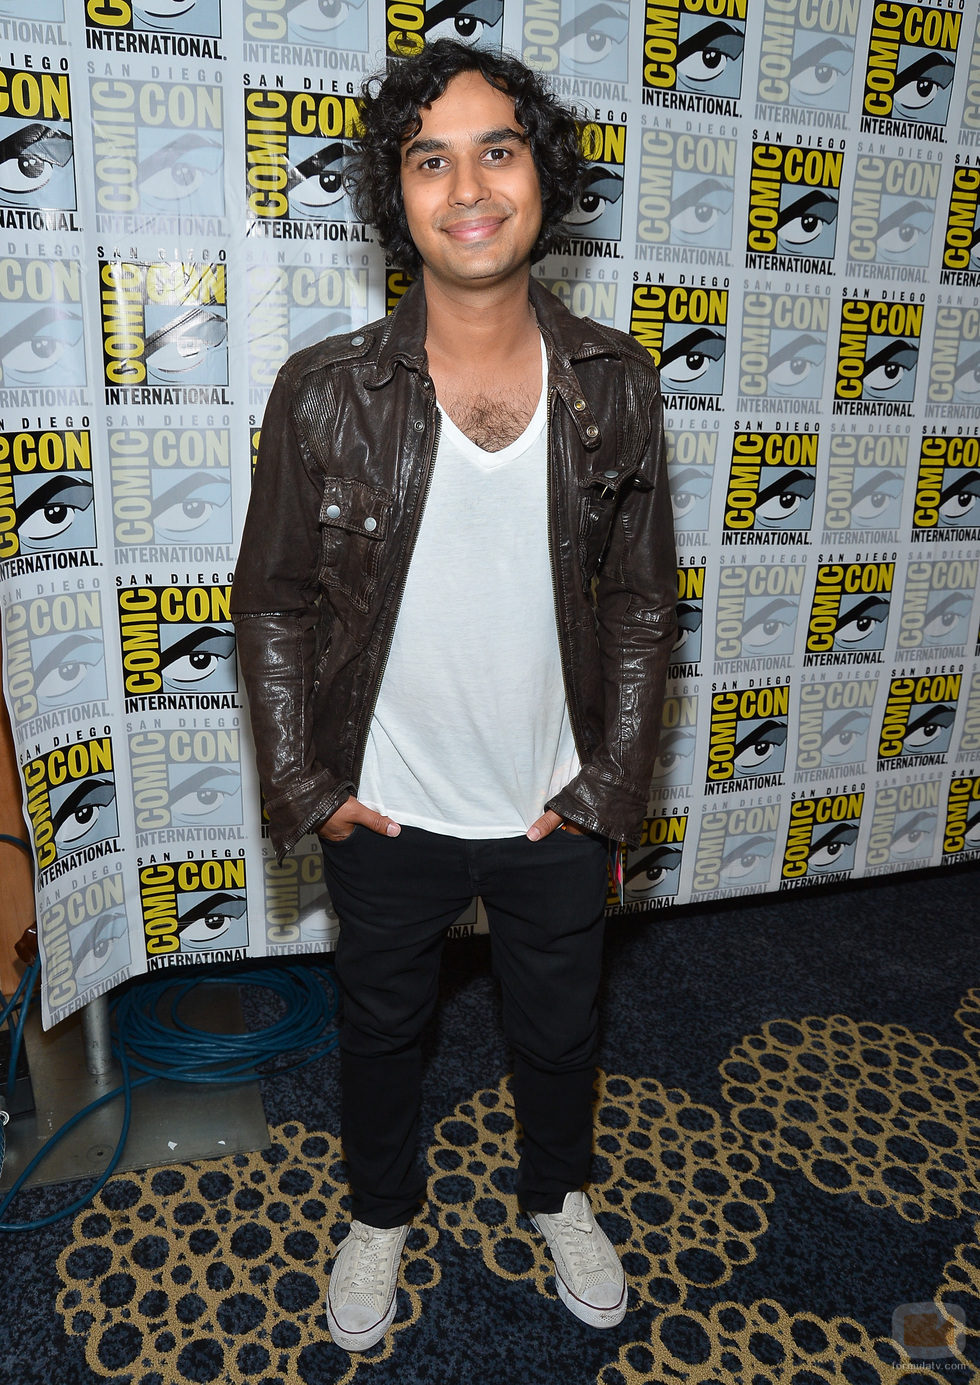 Kunal Nayyar de 'The Big Bang Theory' en la Comic-Con 2012